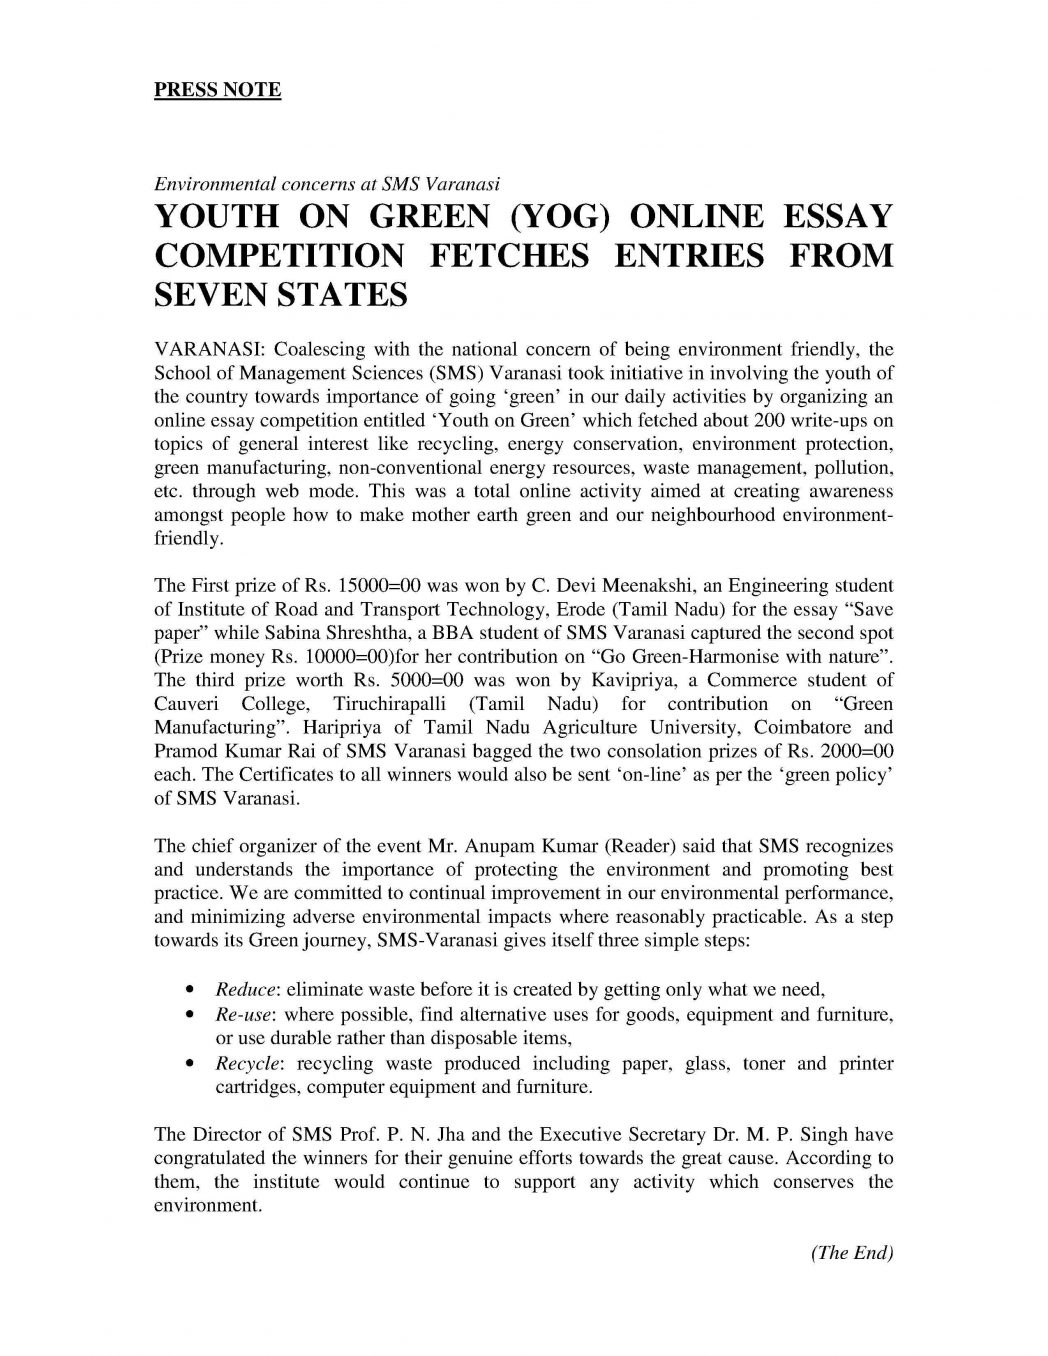 006 Amusing Ourselves To Death Essay Good Habits Online Essays Yog Press Re Ftce Examples Gkt 1048x1356 Example Unbelievable Sample English 6-12 Samples Practice Full